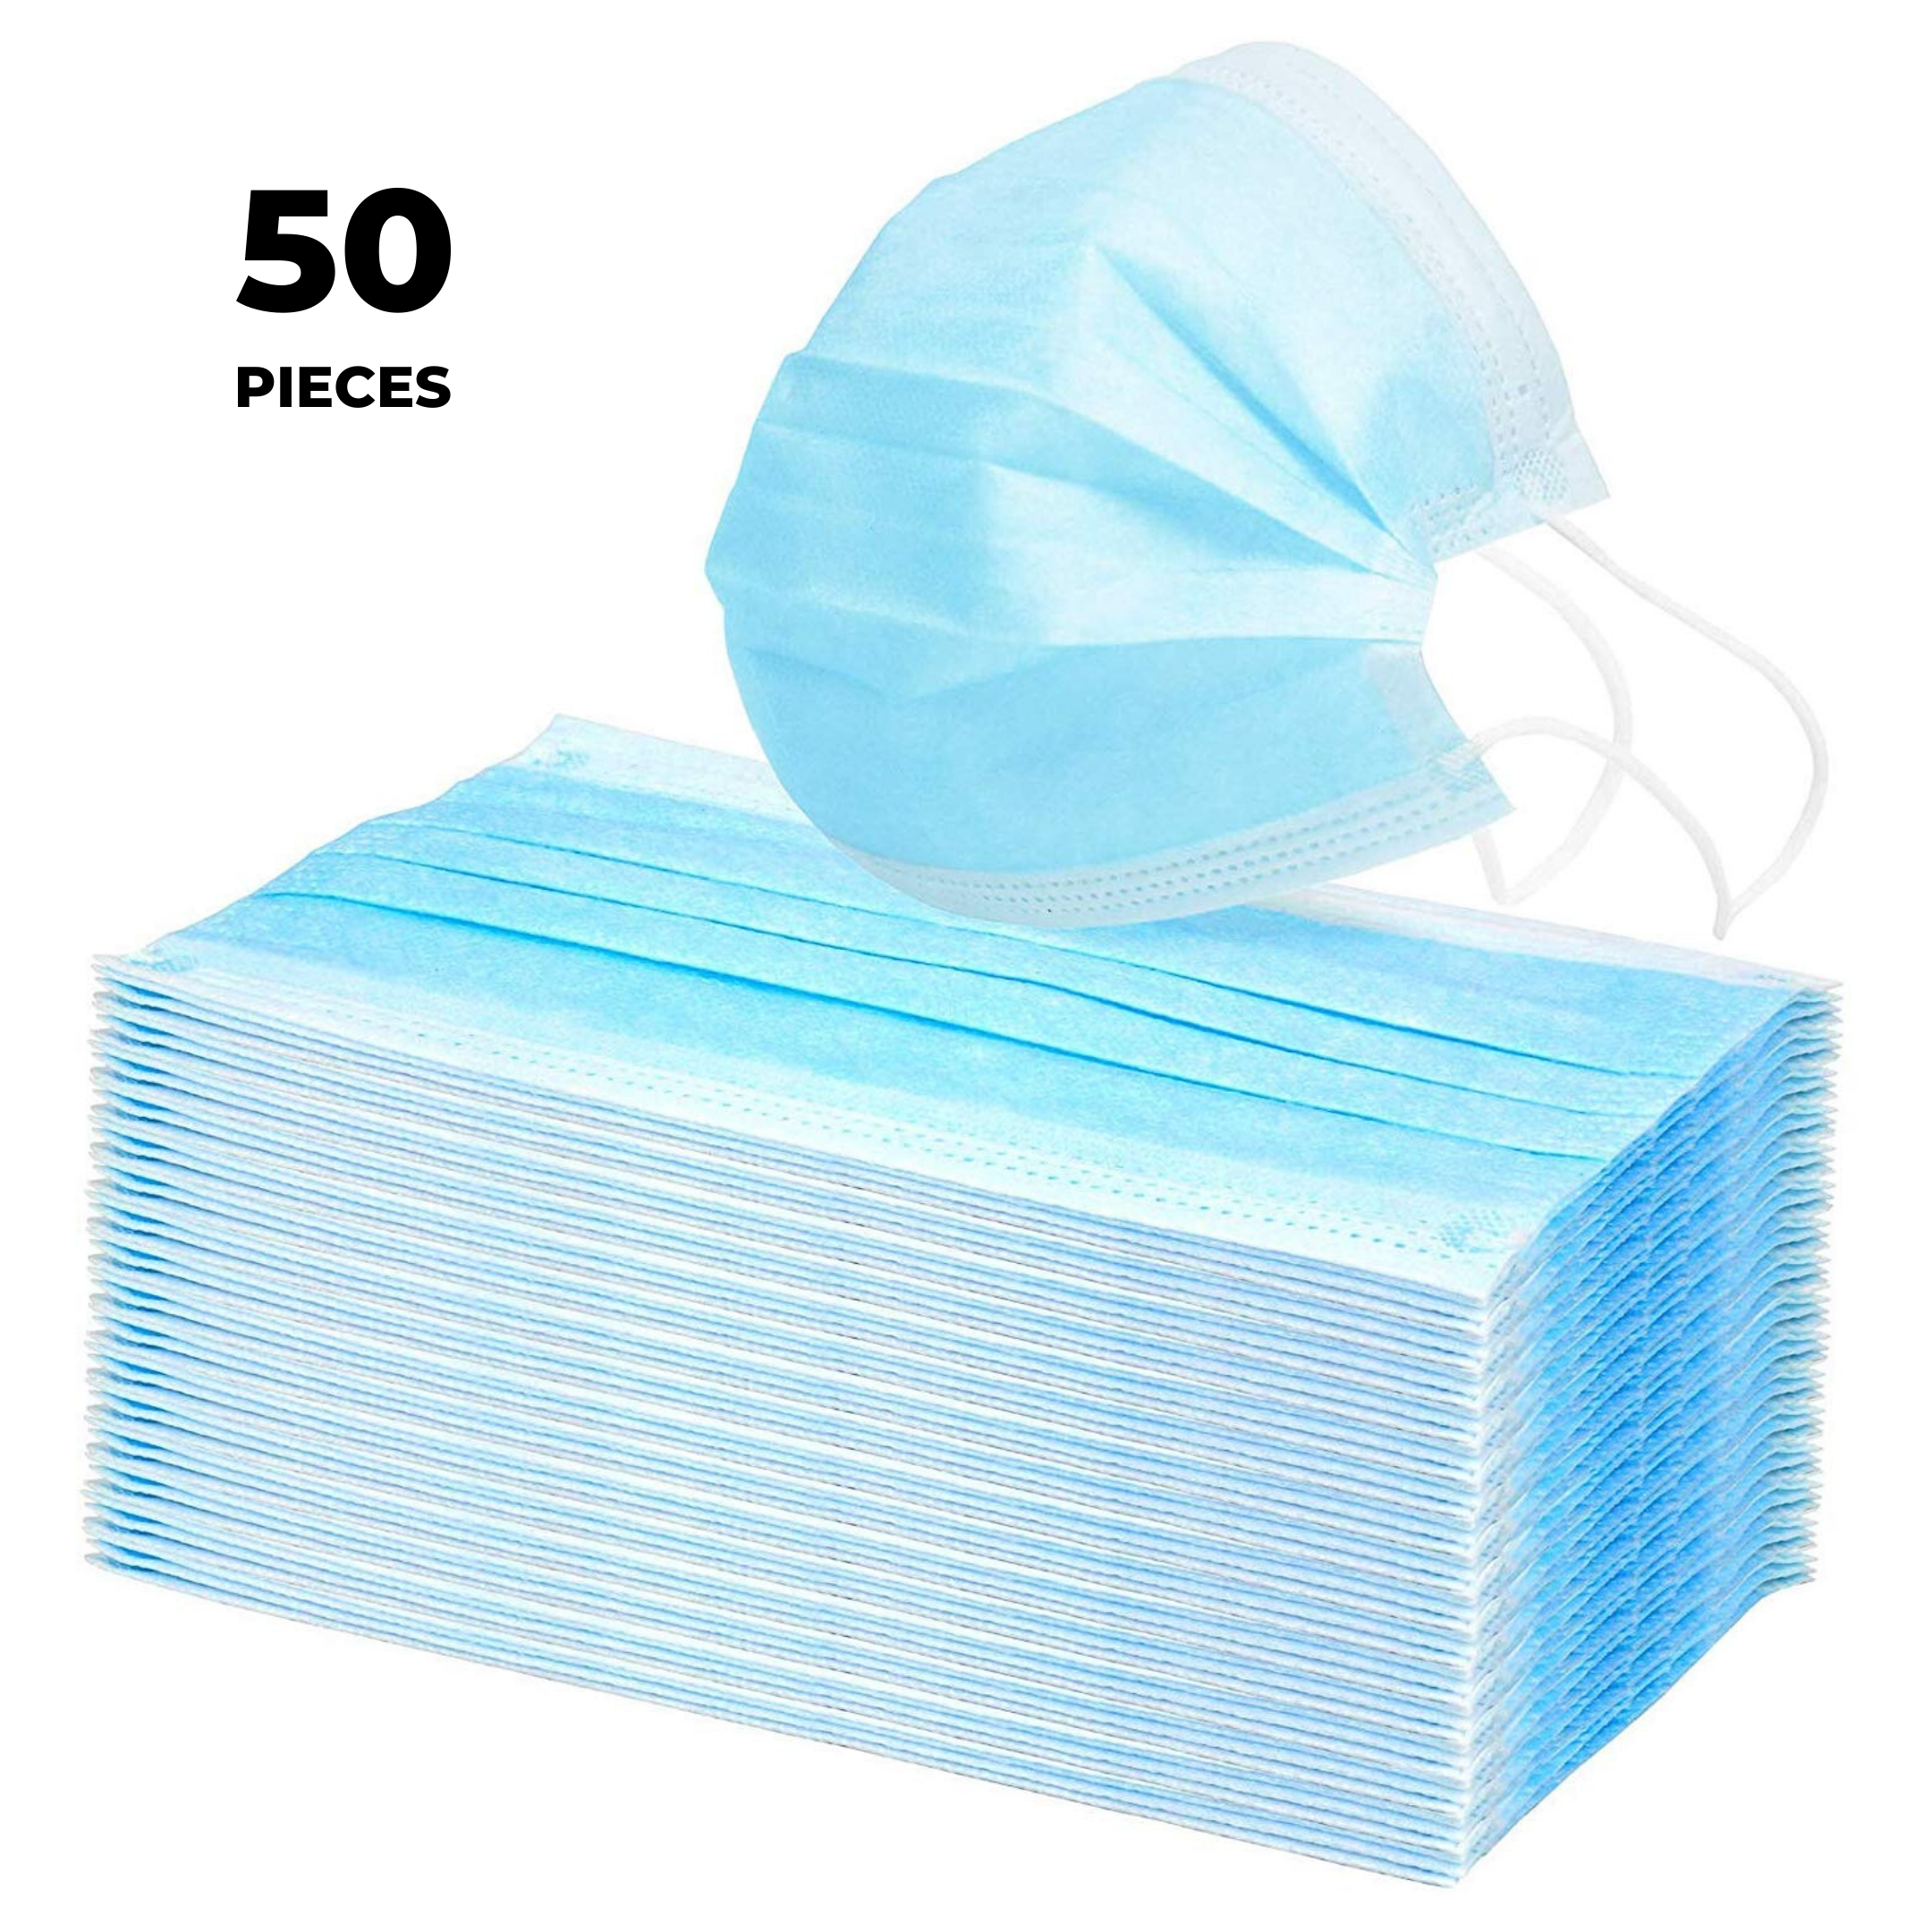 50 Pcs of Disposable Face Masks - 3 Layers of Protection - High Quality